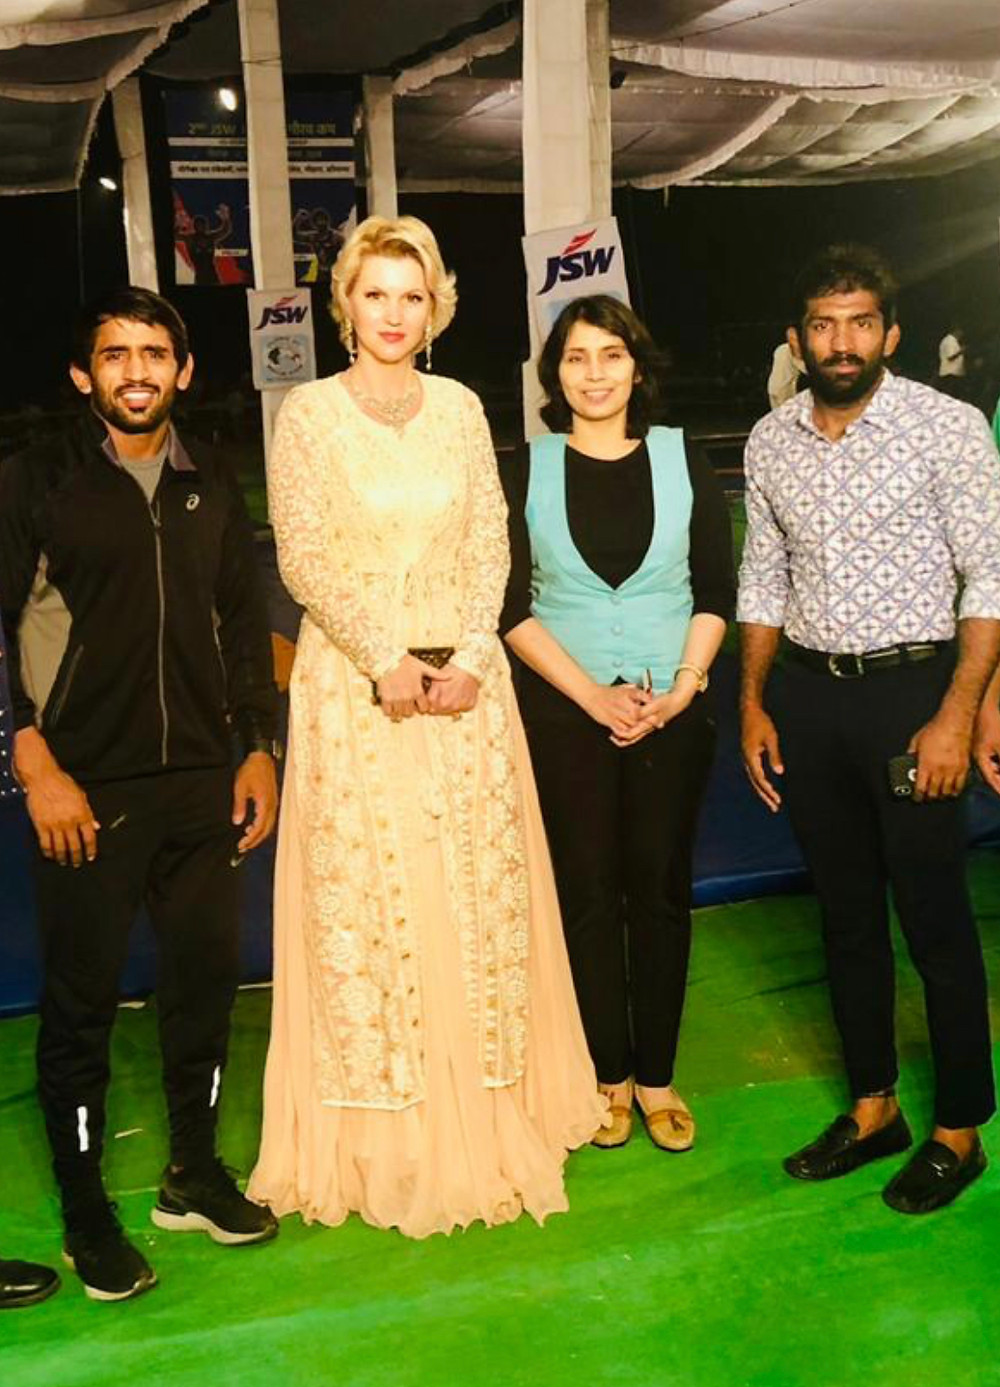 Anca Verma with Yogeshwar Dutt,Bajrang Punia and others at Yogeshwar Dutt Wrestling Academy